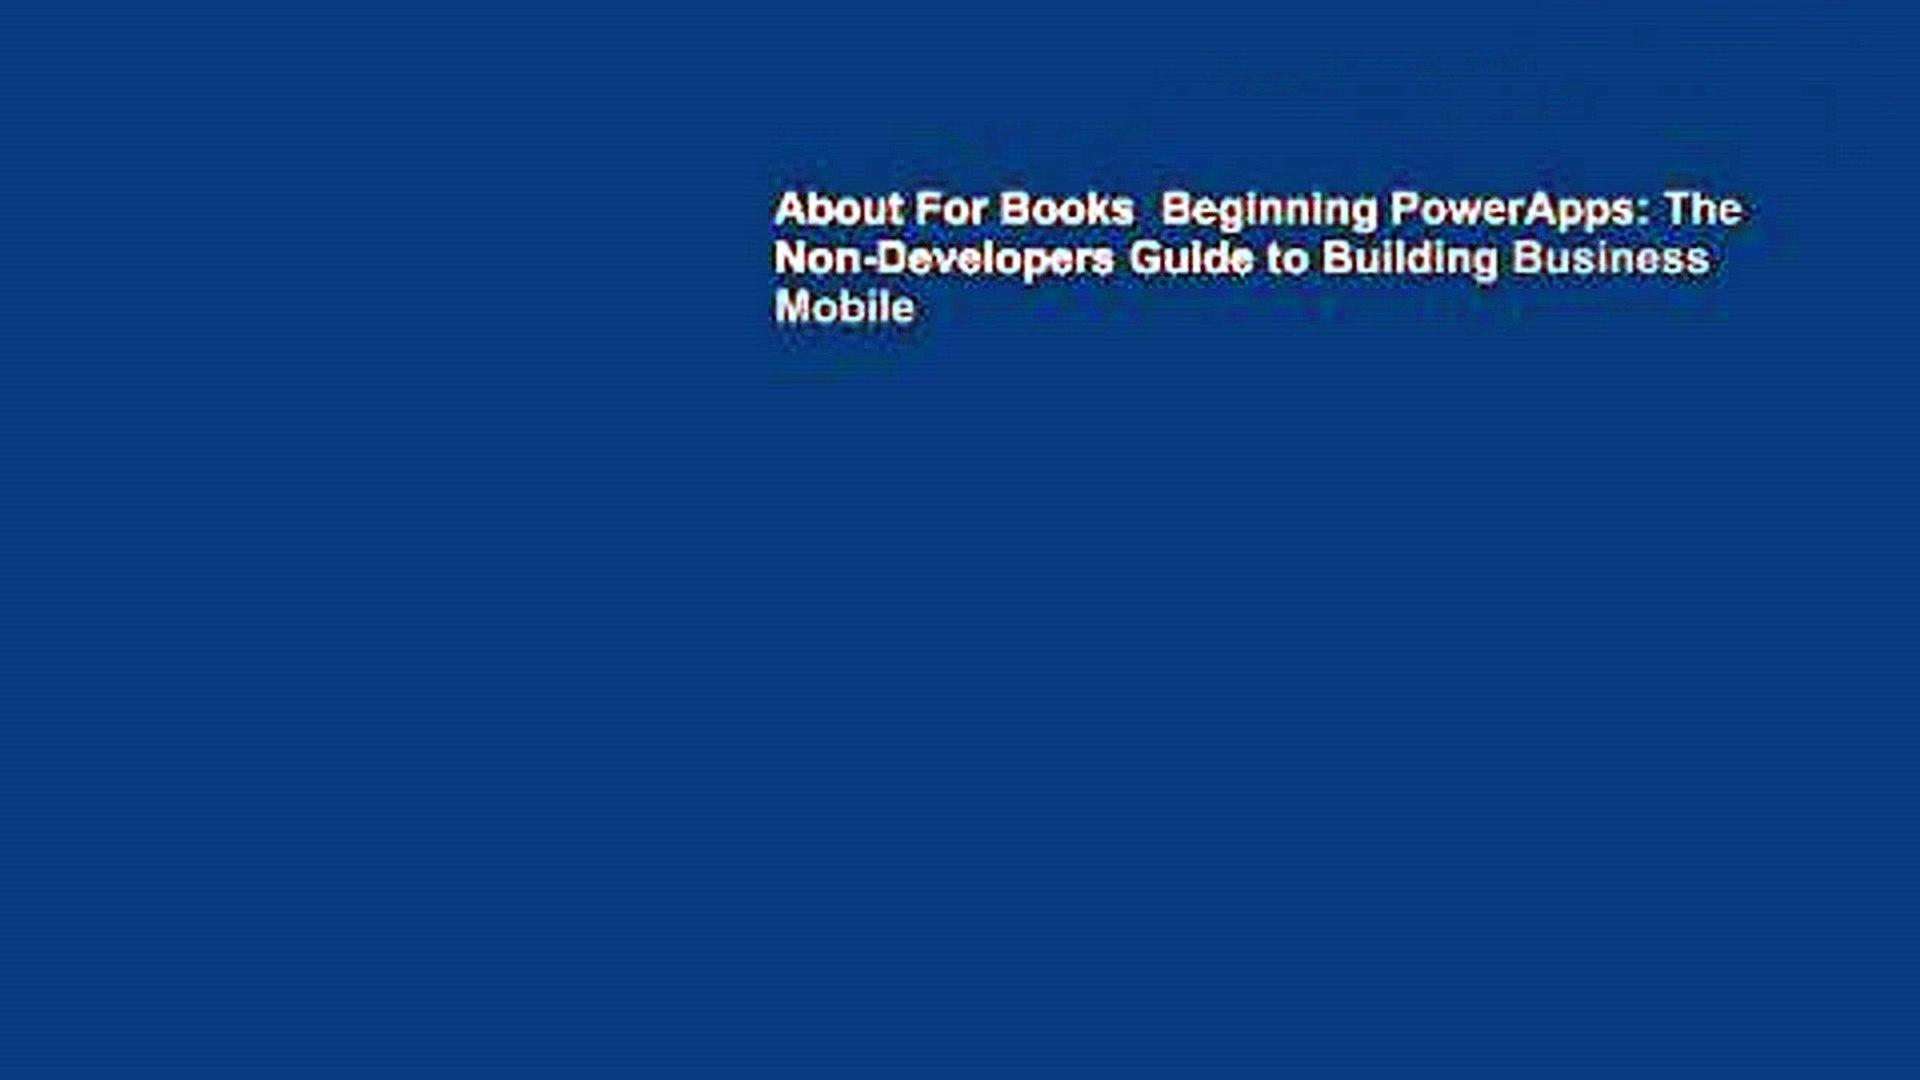 About For Books Beginning PowerApps: The Non-Developers Guide to Building  Business Mobile